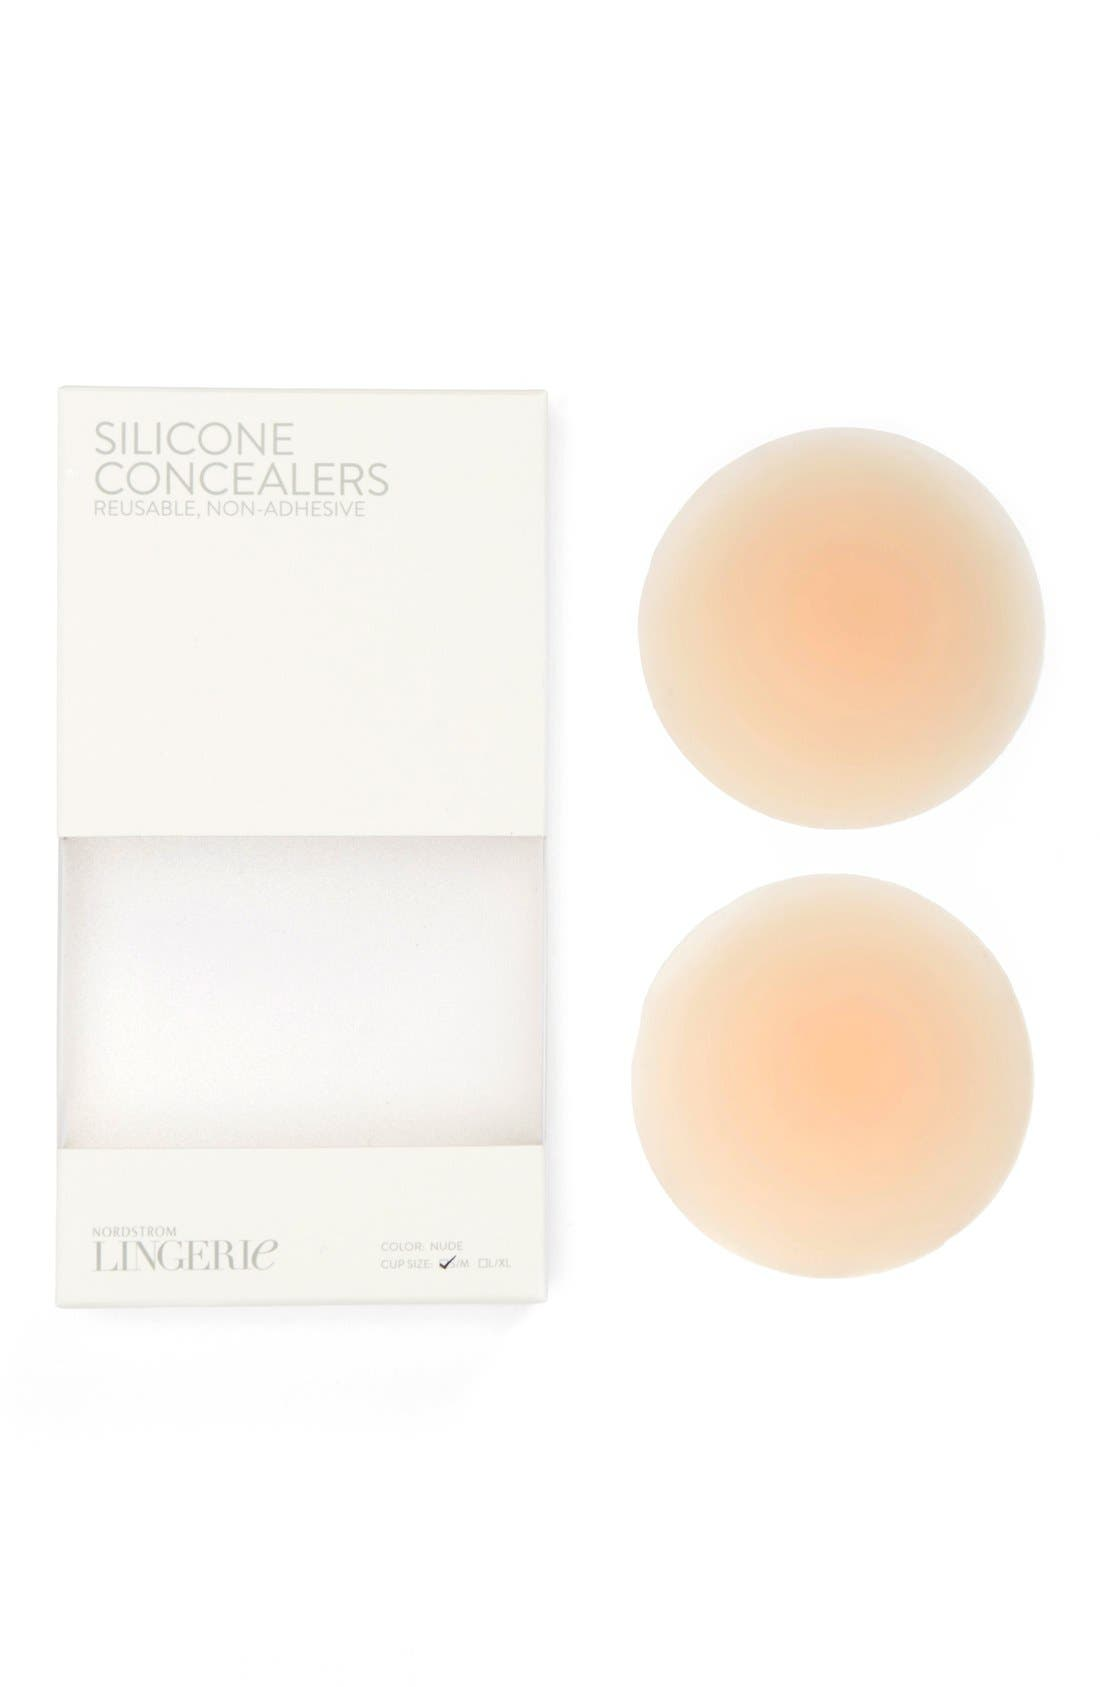 Alternate Image 1 Selected - Nordstrom Lingerie Non-Adhesive Silicone Breast Petals